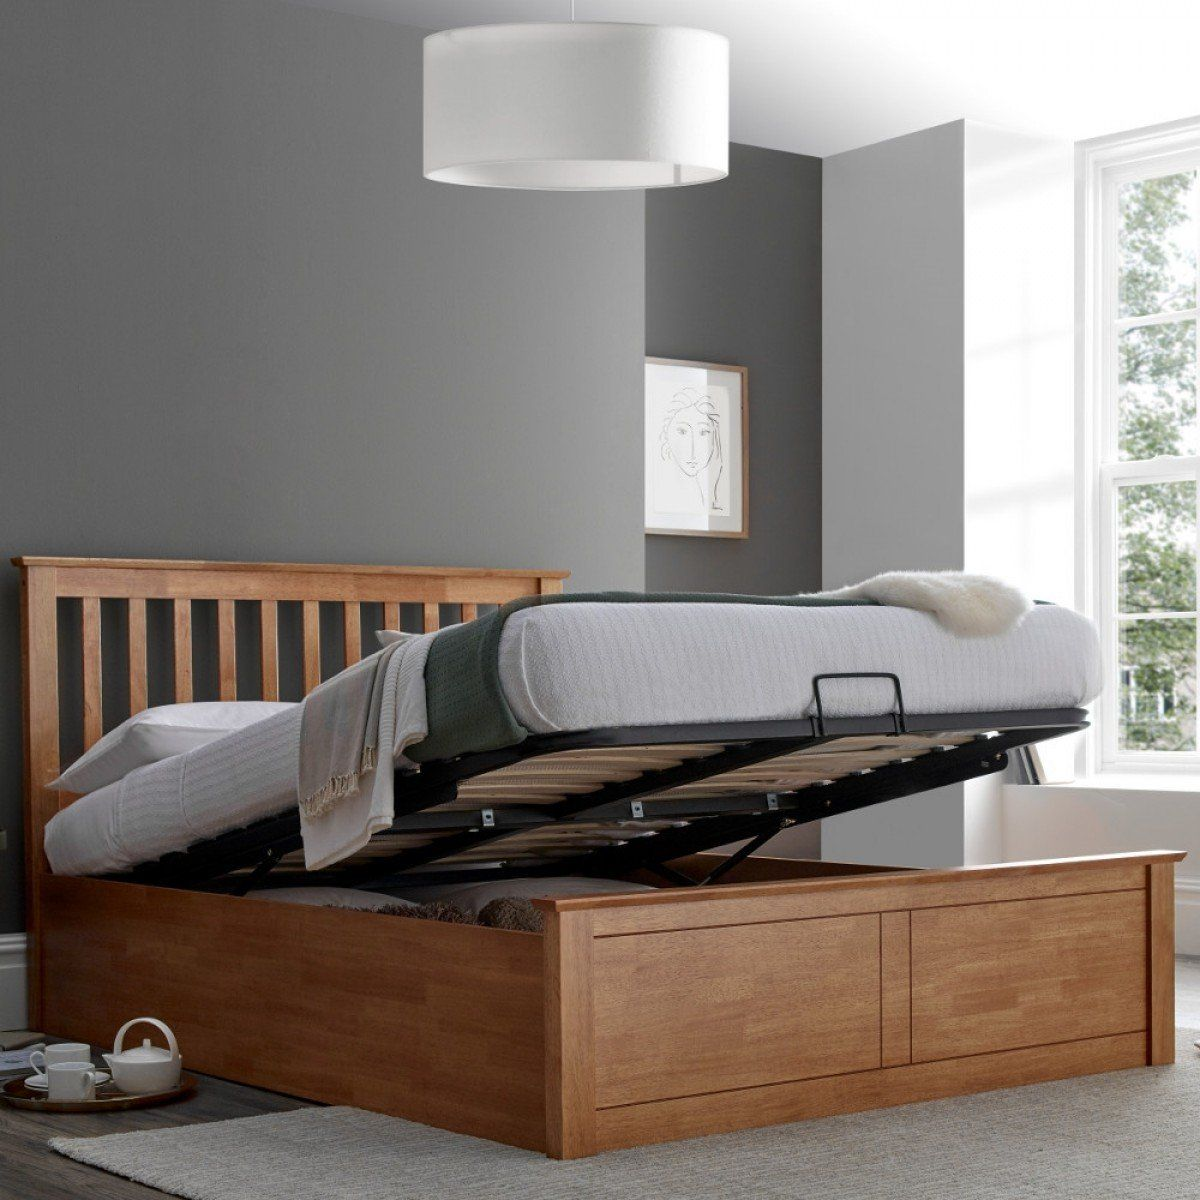 Malmo Oak Wooden Ottoman Bed Frame 5ft King Size In 2020